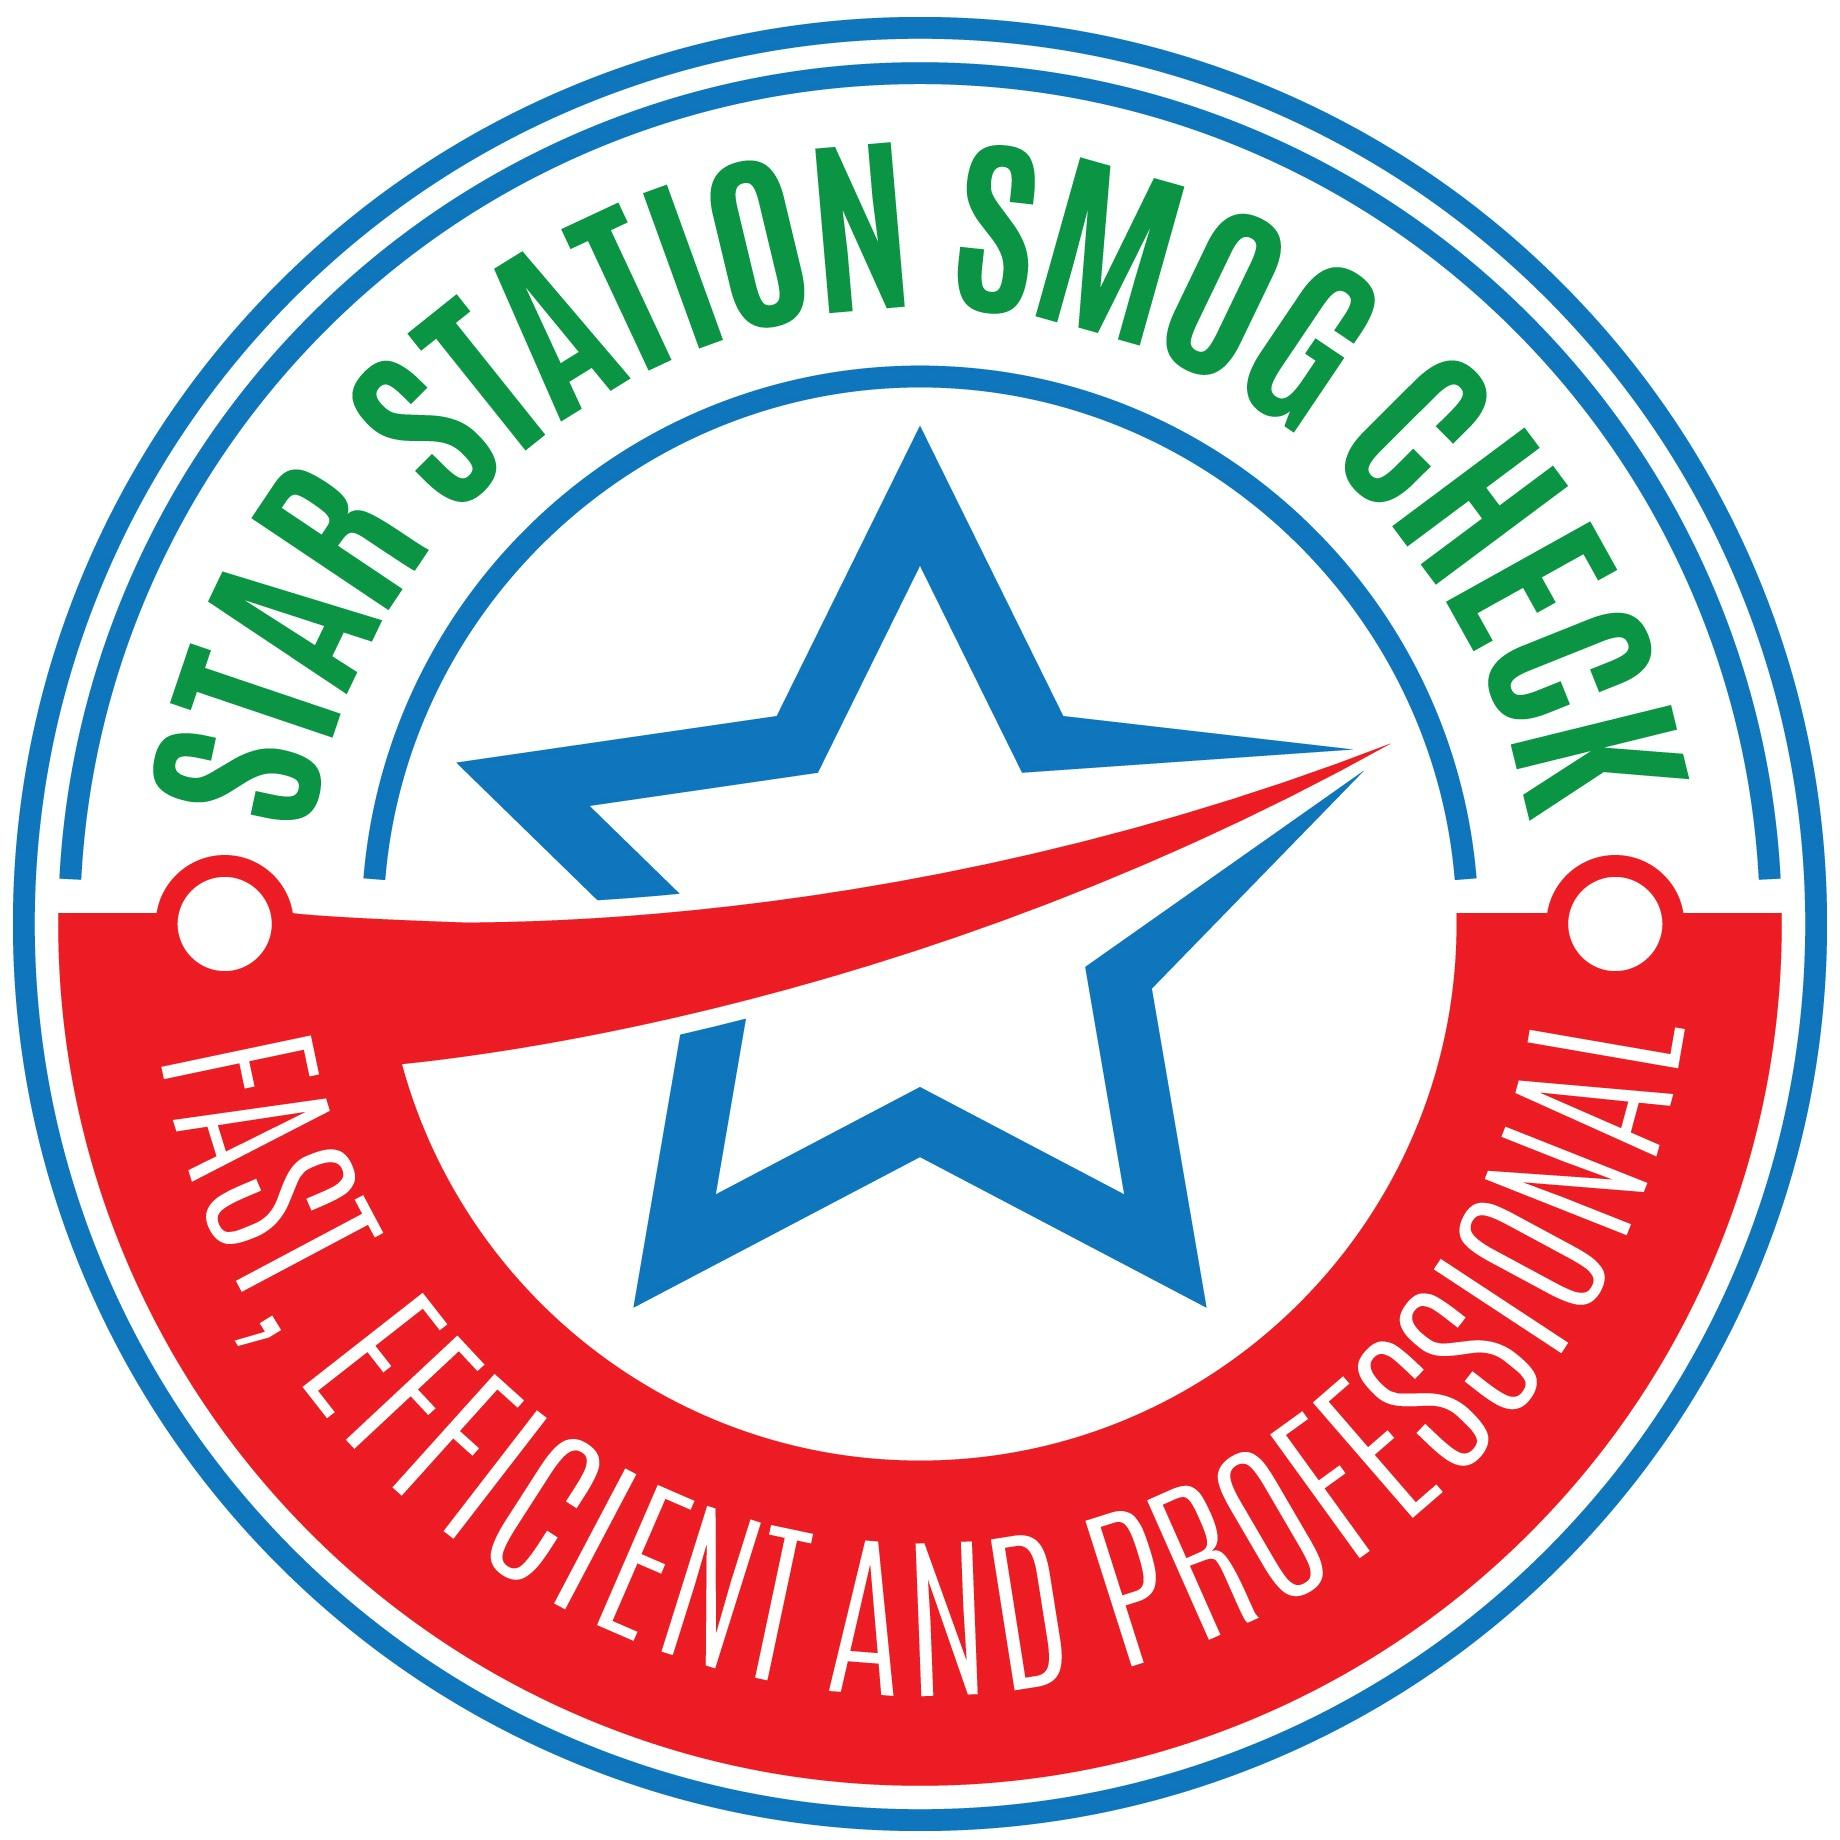 Star Station Smog Check